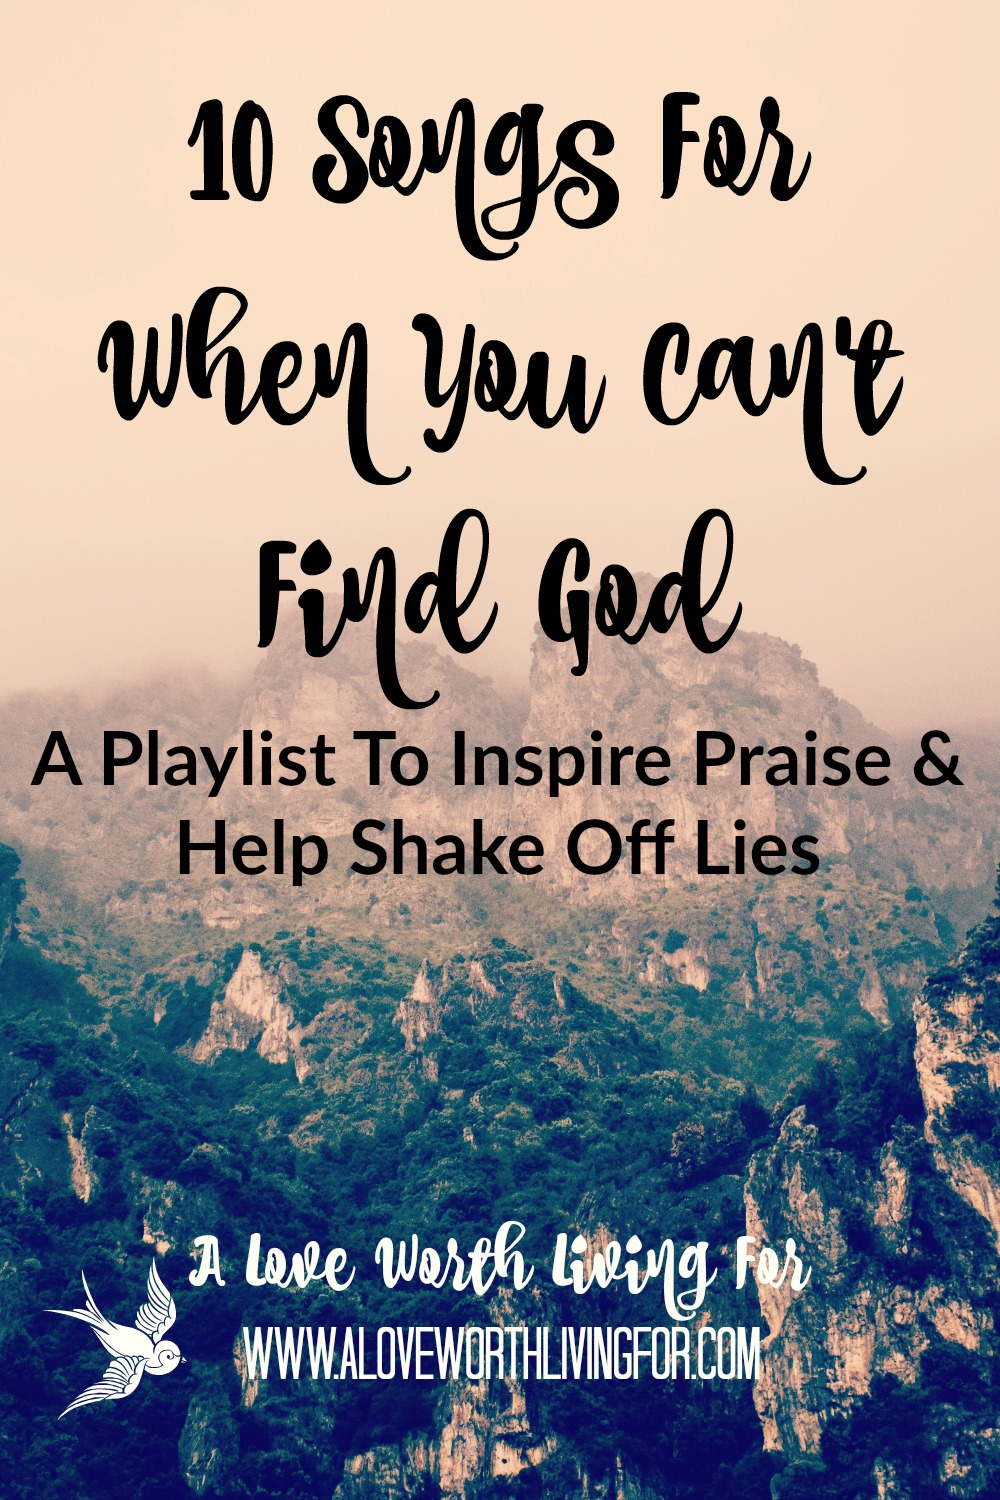 A common lie that attack is the lie that we are all alone. One of the best ways to combat lies and change your perspective and atmosphere is through praise. Here are ten songs that will help you fight back the darkness and release praise and thanksgiving in your heart.